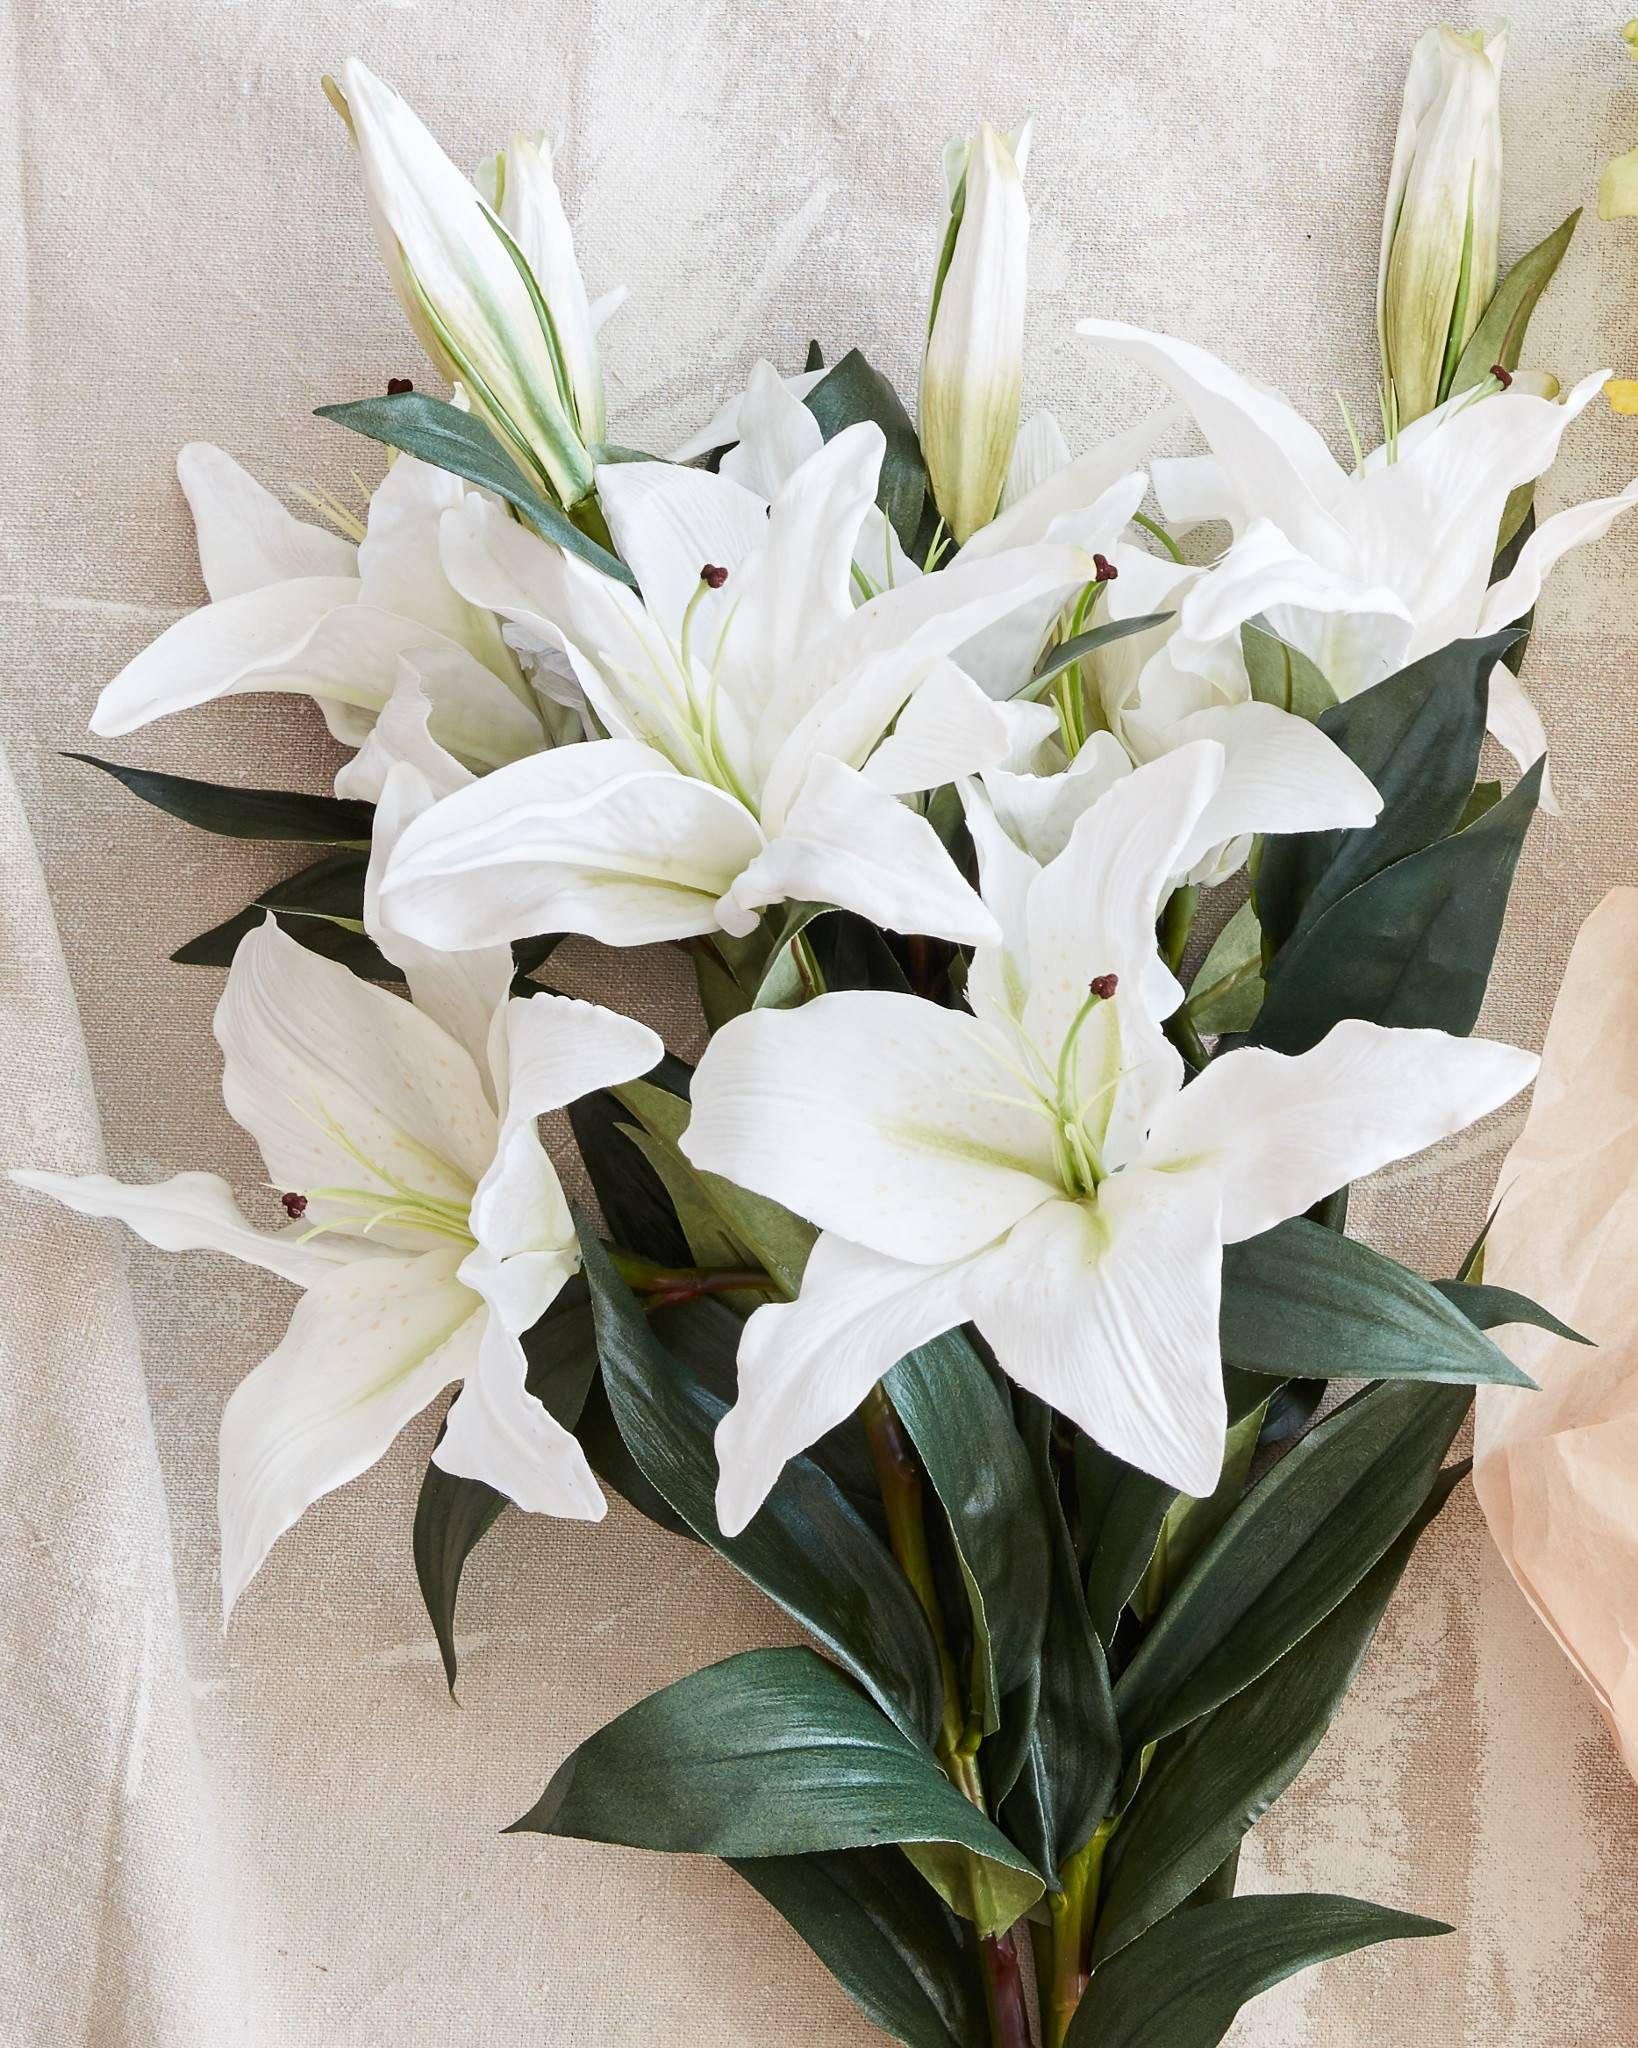 White Casablanca Lily Stems Bundle Lily Flower Oriental Lily Artificial Flowers